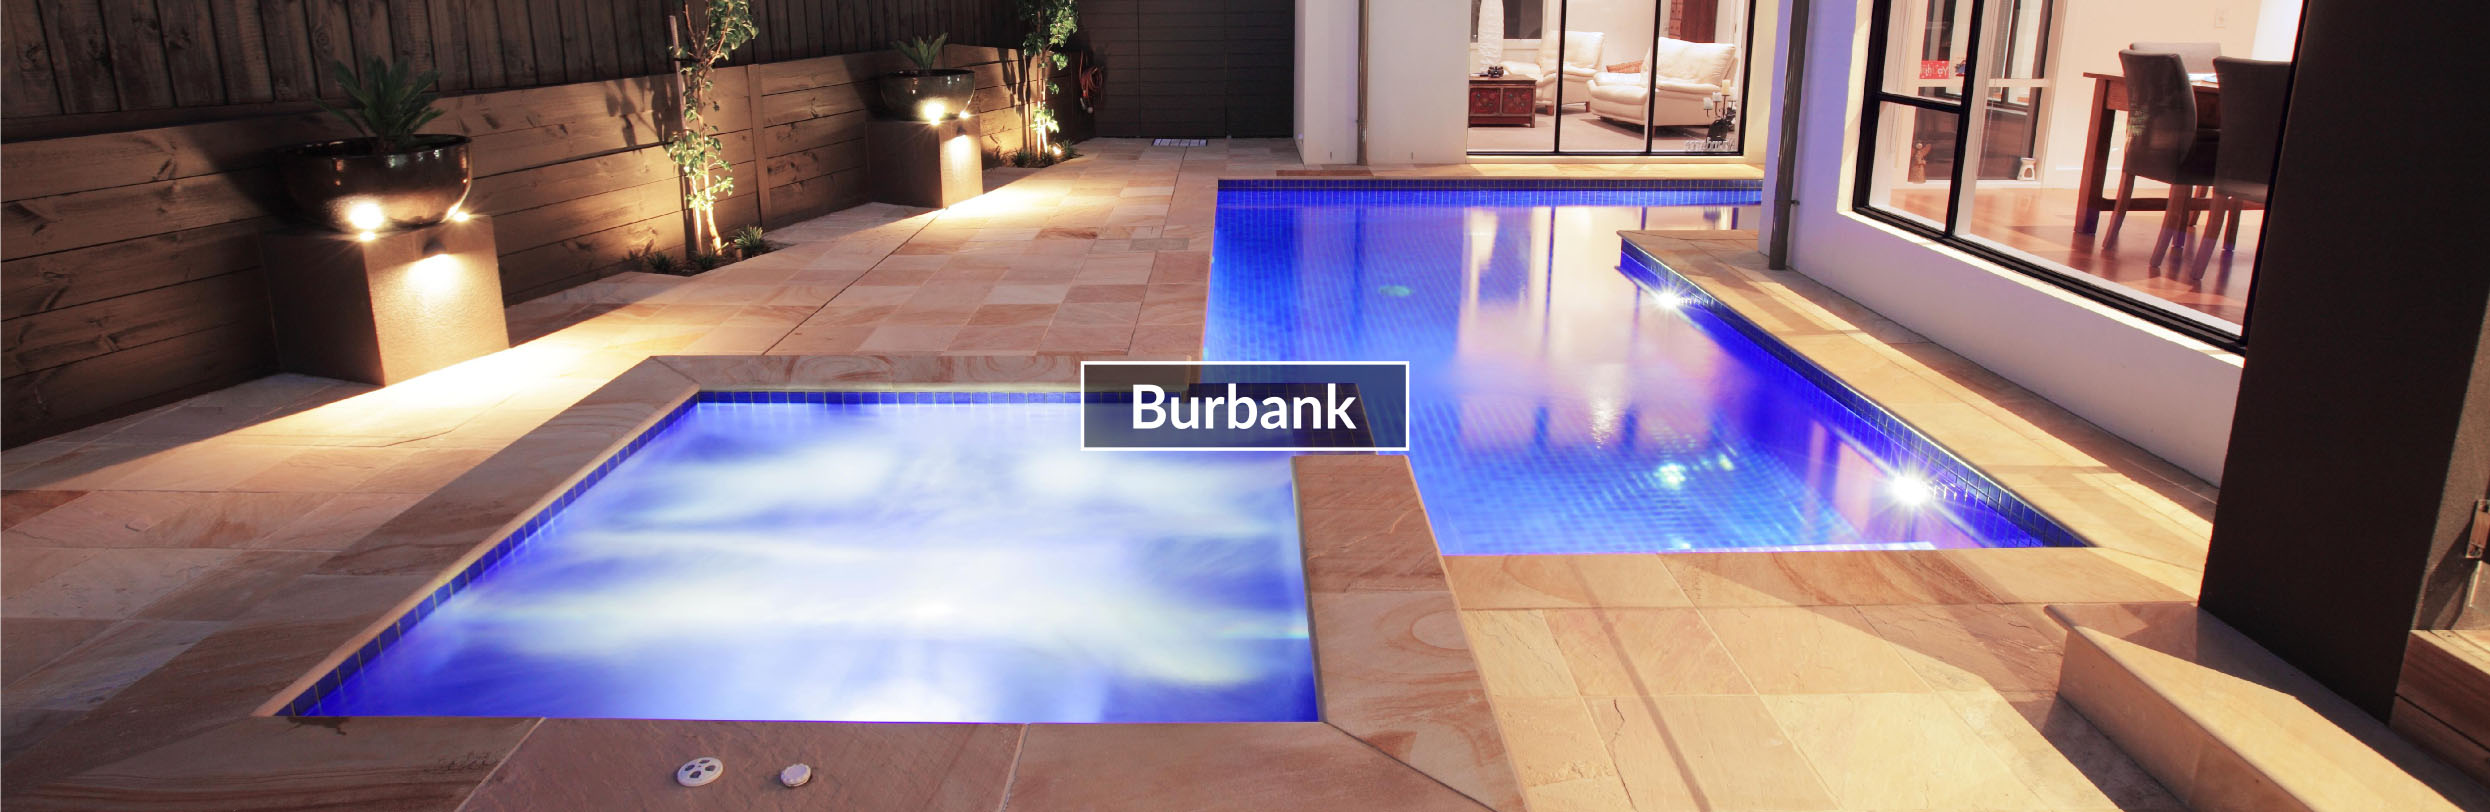 Burbank - Kiama Pools Project